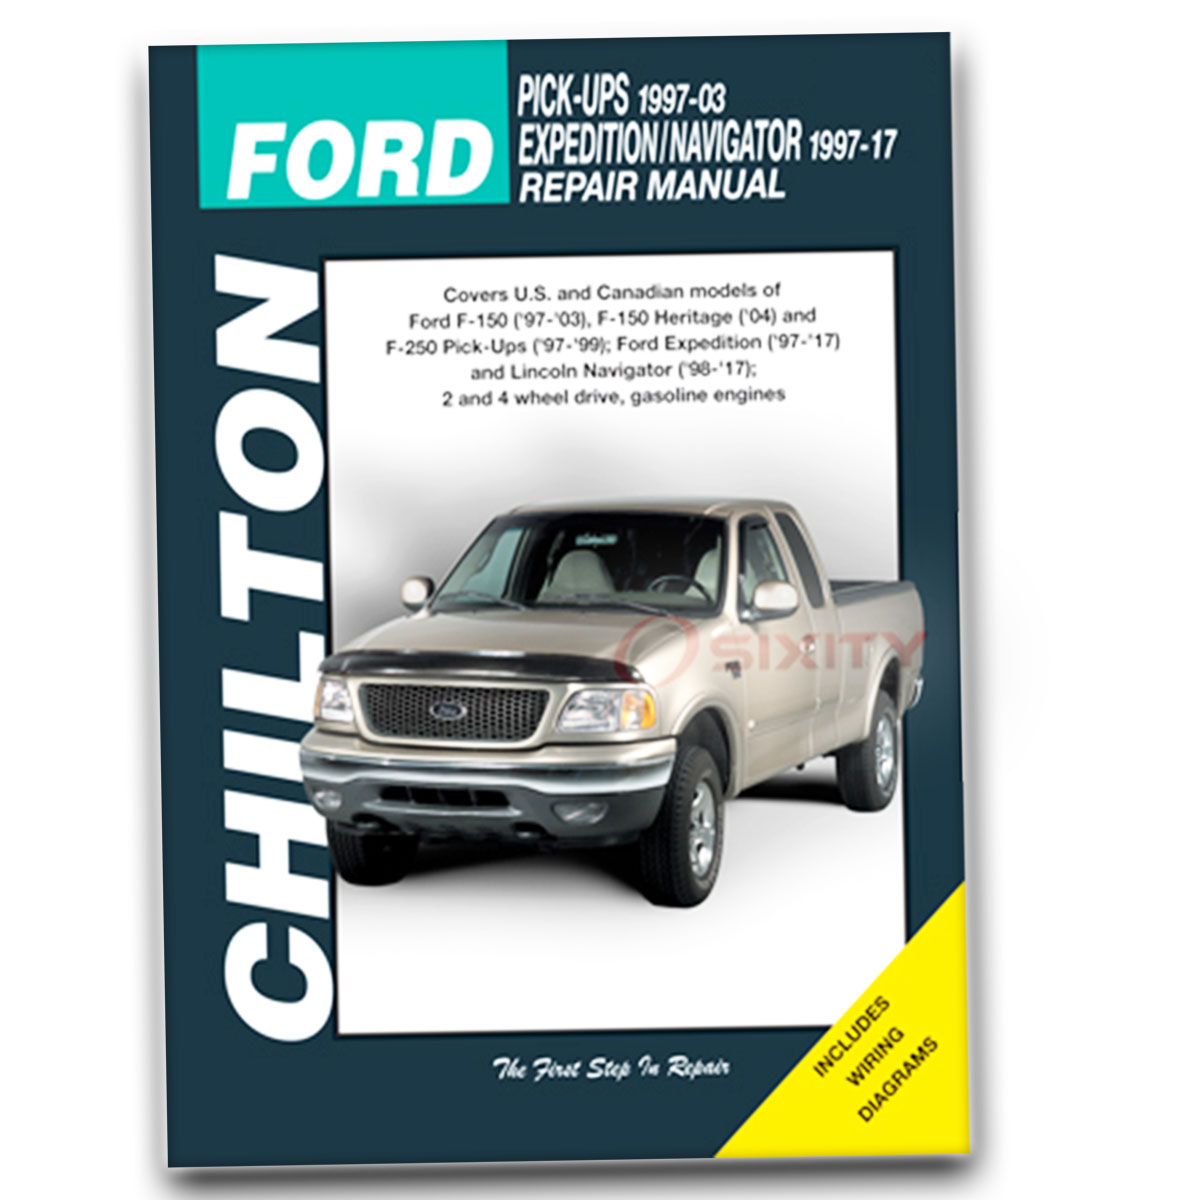 Chilton Repair Manual for Ford F-150 Heritage XL XLT Shop Service Garage  Boo iy